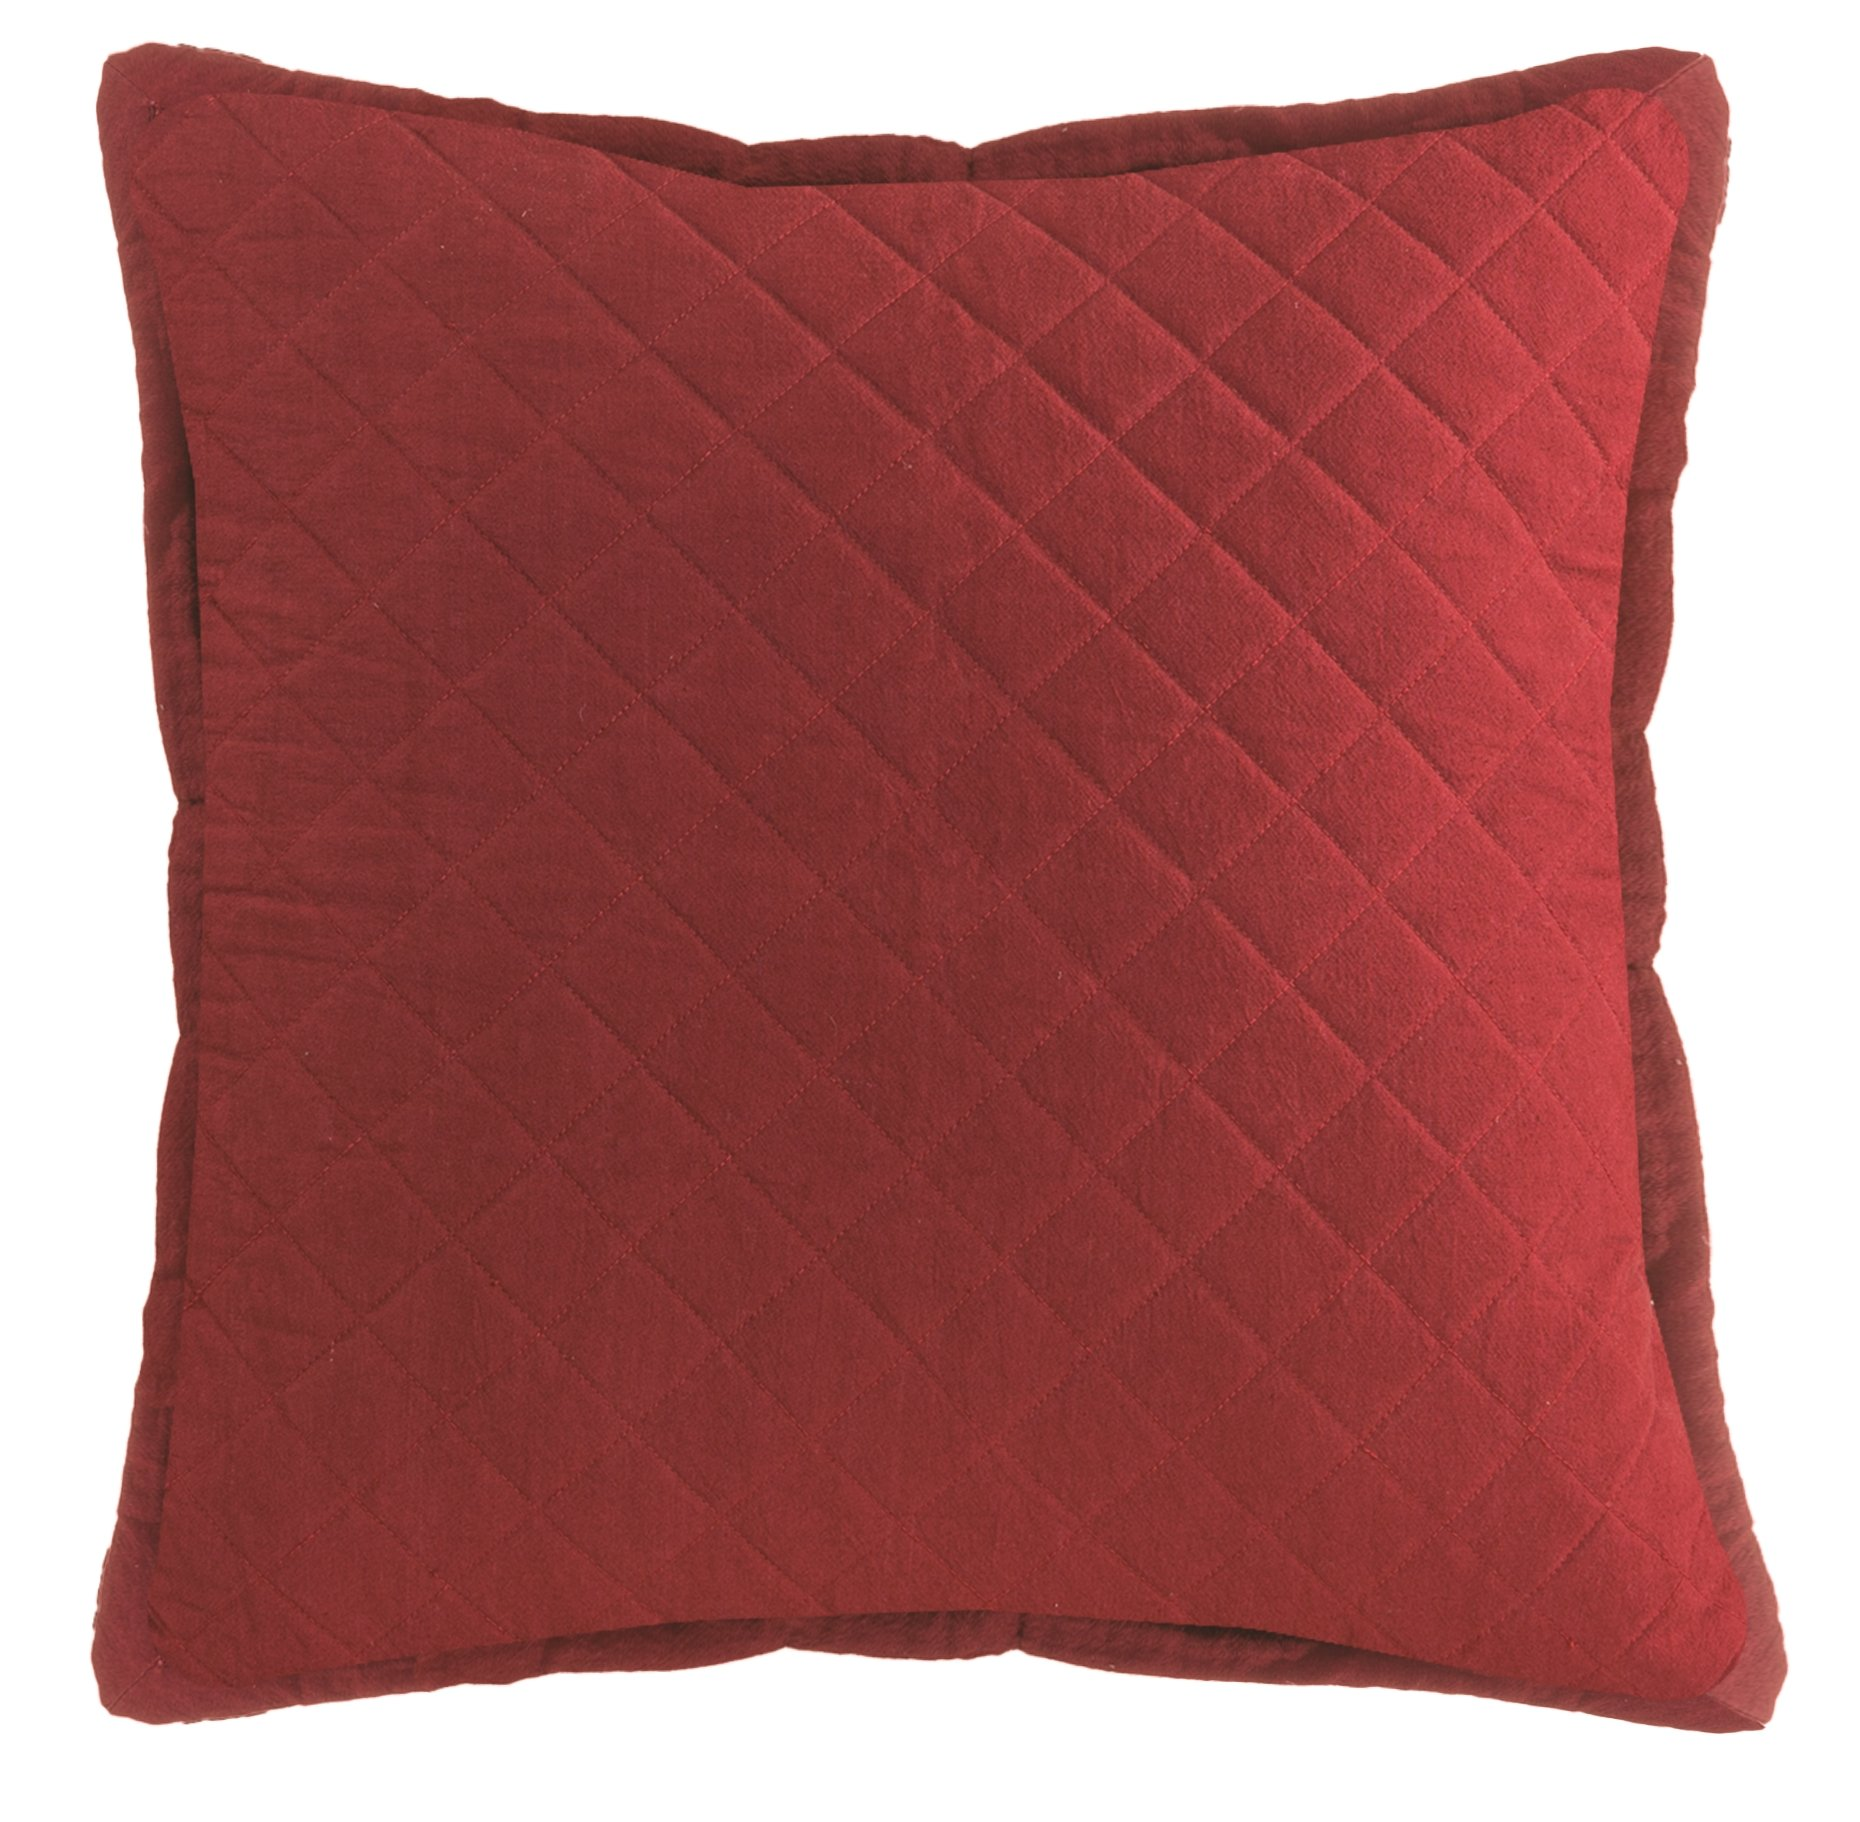 "Heritage Lace Red Farmhouse 22""x22"" Quilted Pillow, 22"" x 22"" - Measures 22x 22 100 Percent cotton Pillow cover: machine wash cold, gentle. Do not bleach. Lay flat or hang to dry. Touch up with cool iron if desired. Pillow insert: spot clean only - living-room-soft-furnishings, living-room, decorative-pillows - 81mnyNS3ldL -"